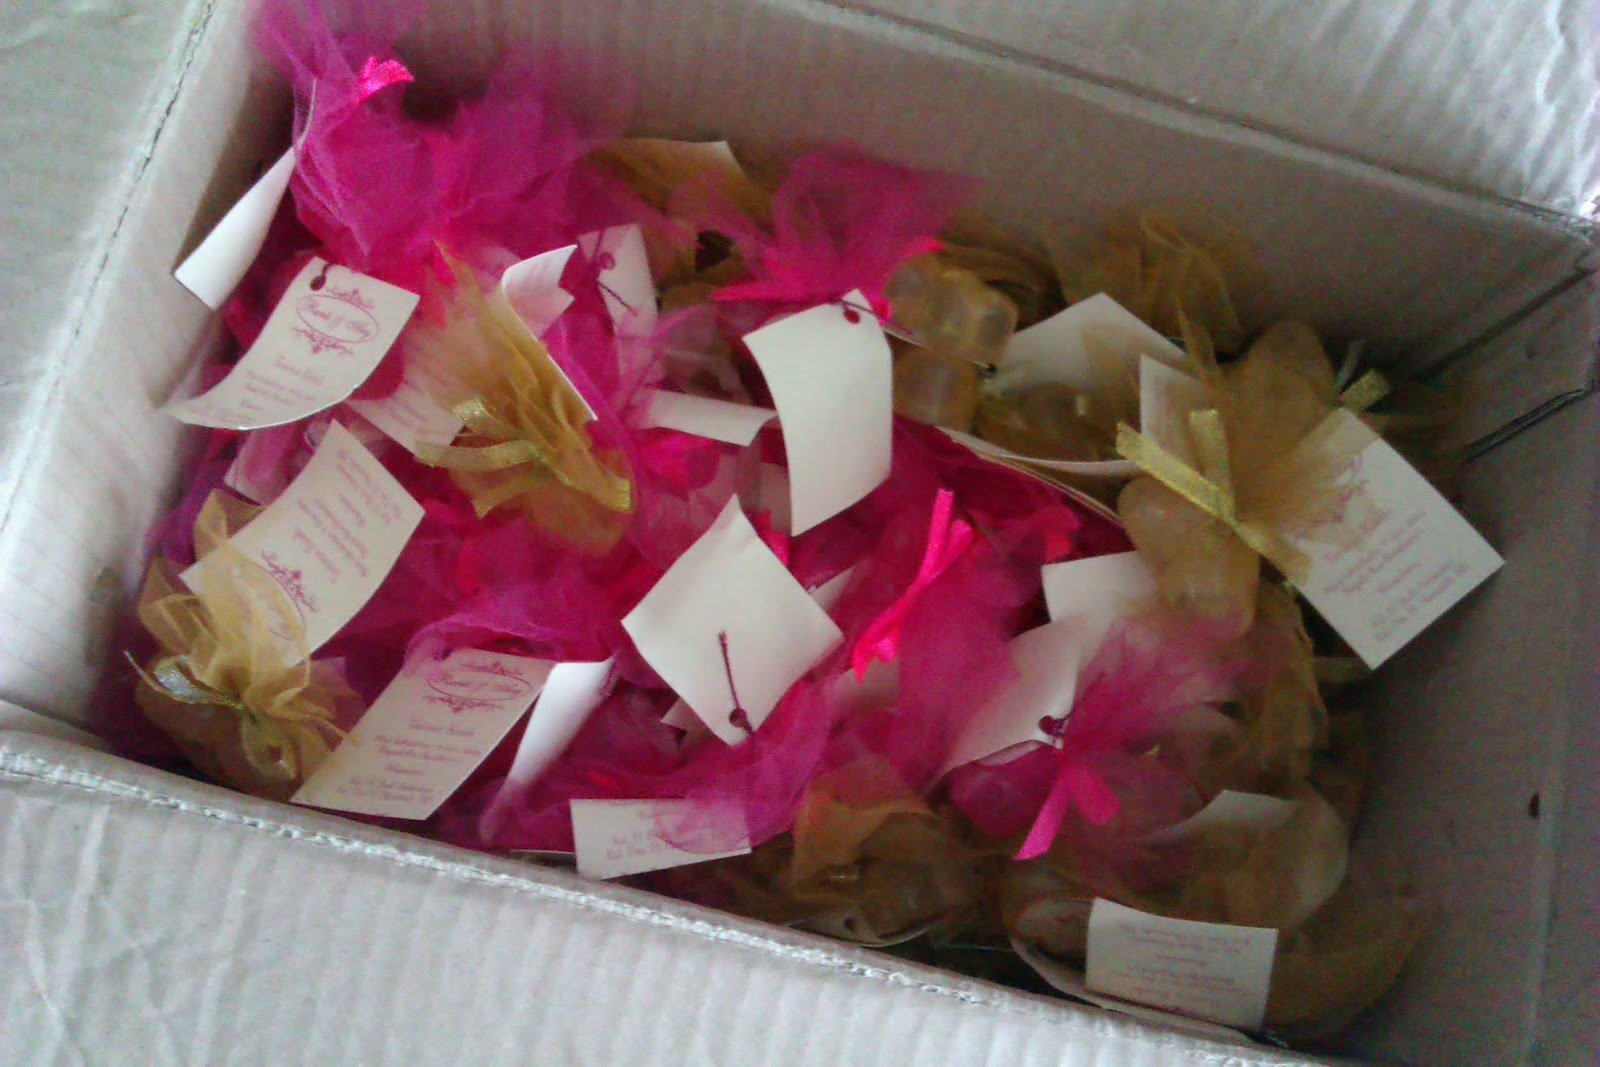 Bubblesoap Macaron Package Daftar Harga Terkini Termurah Dan Kartu Bca Flazz Special Edisi Macaroon Because They Will Keep It As Room Freshener And Hang Them In The Car With